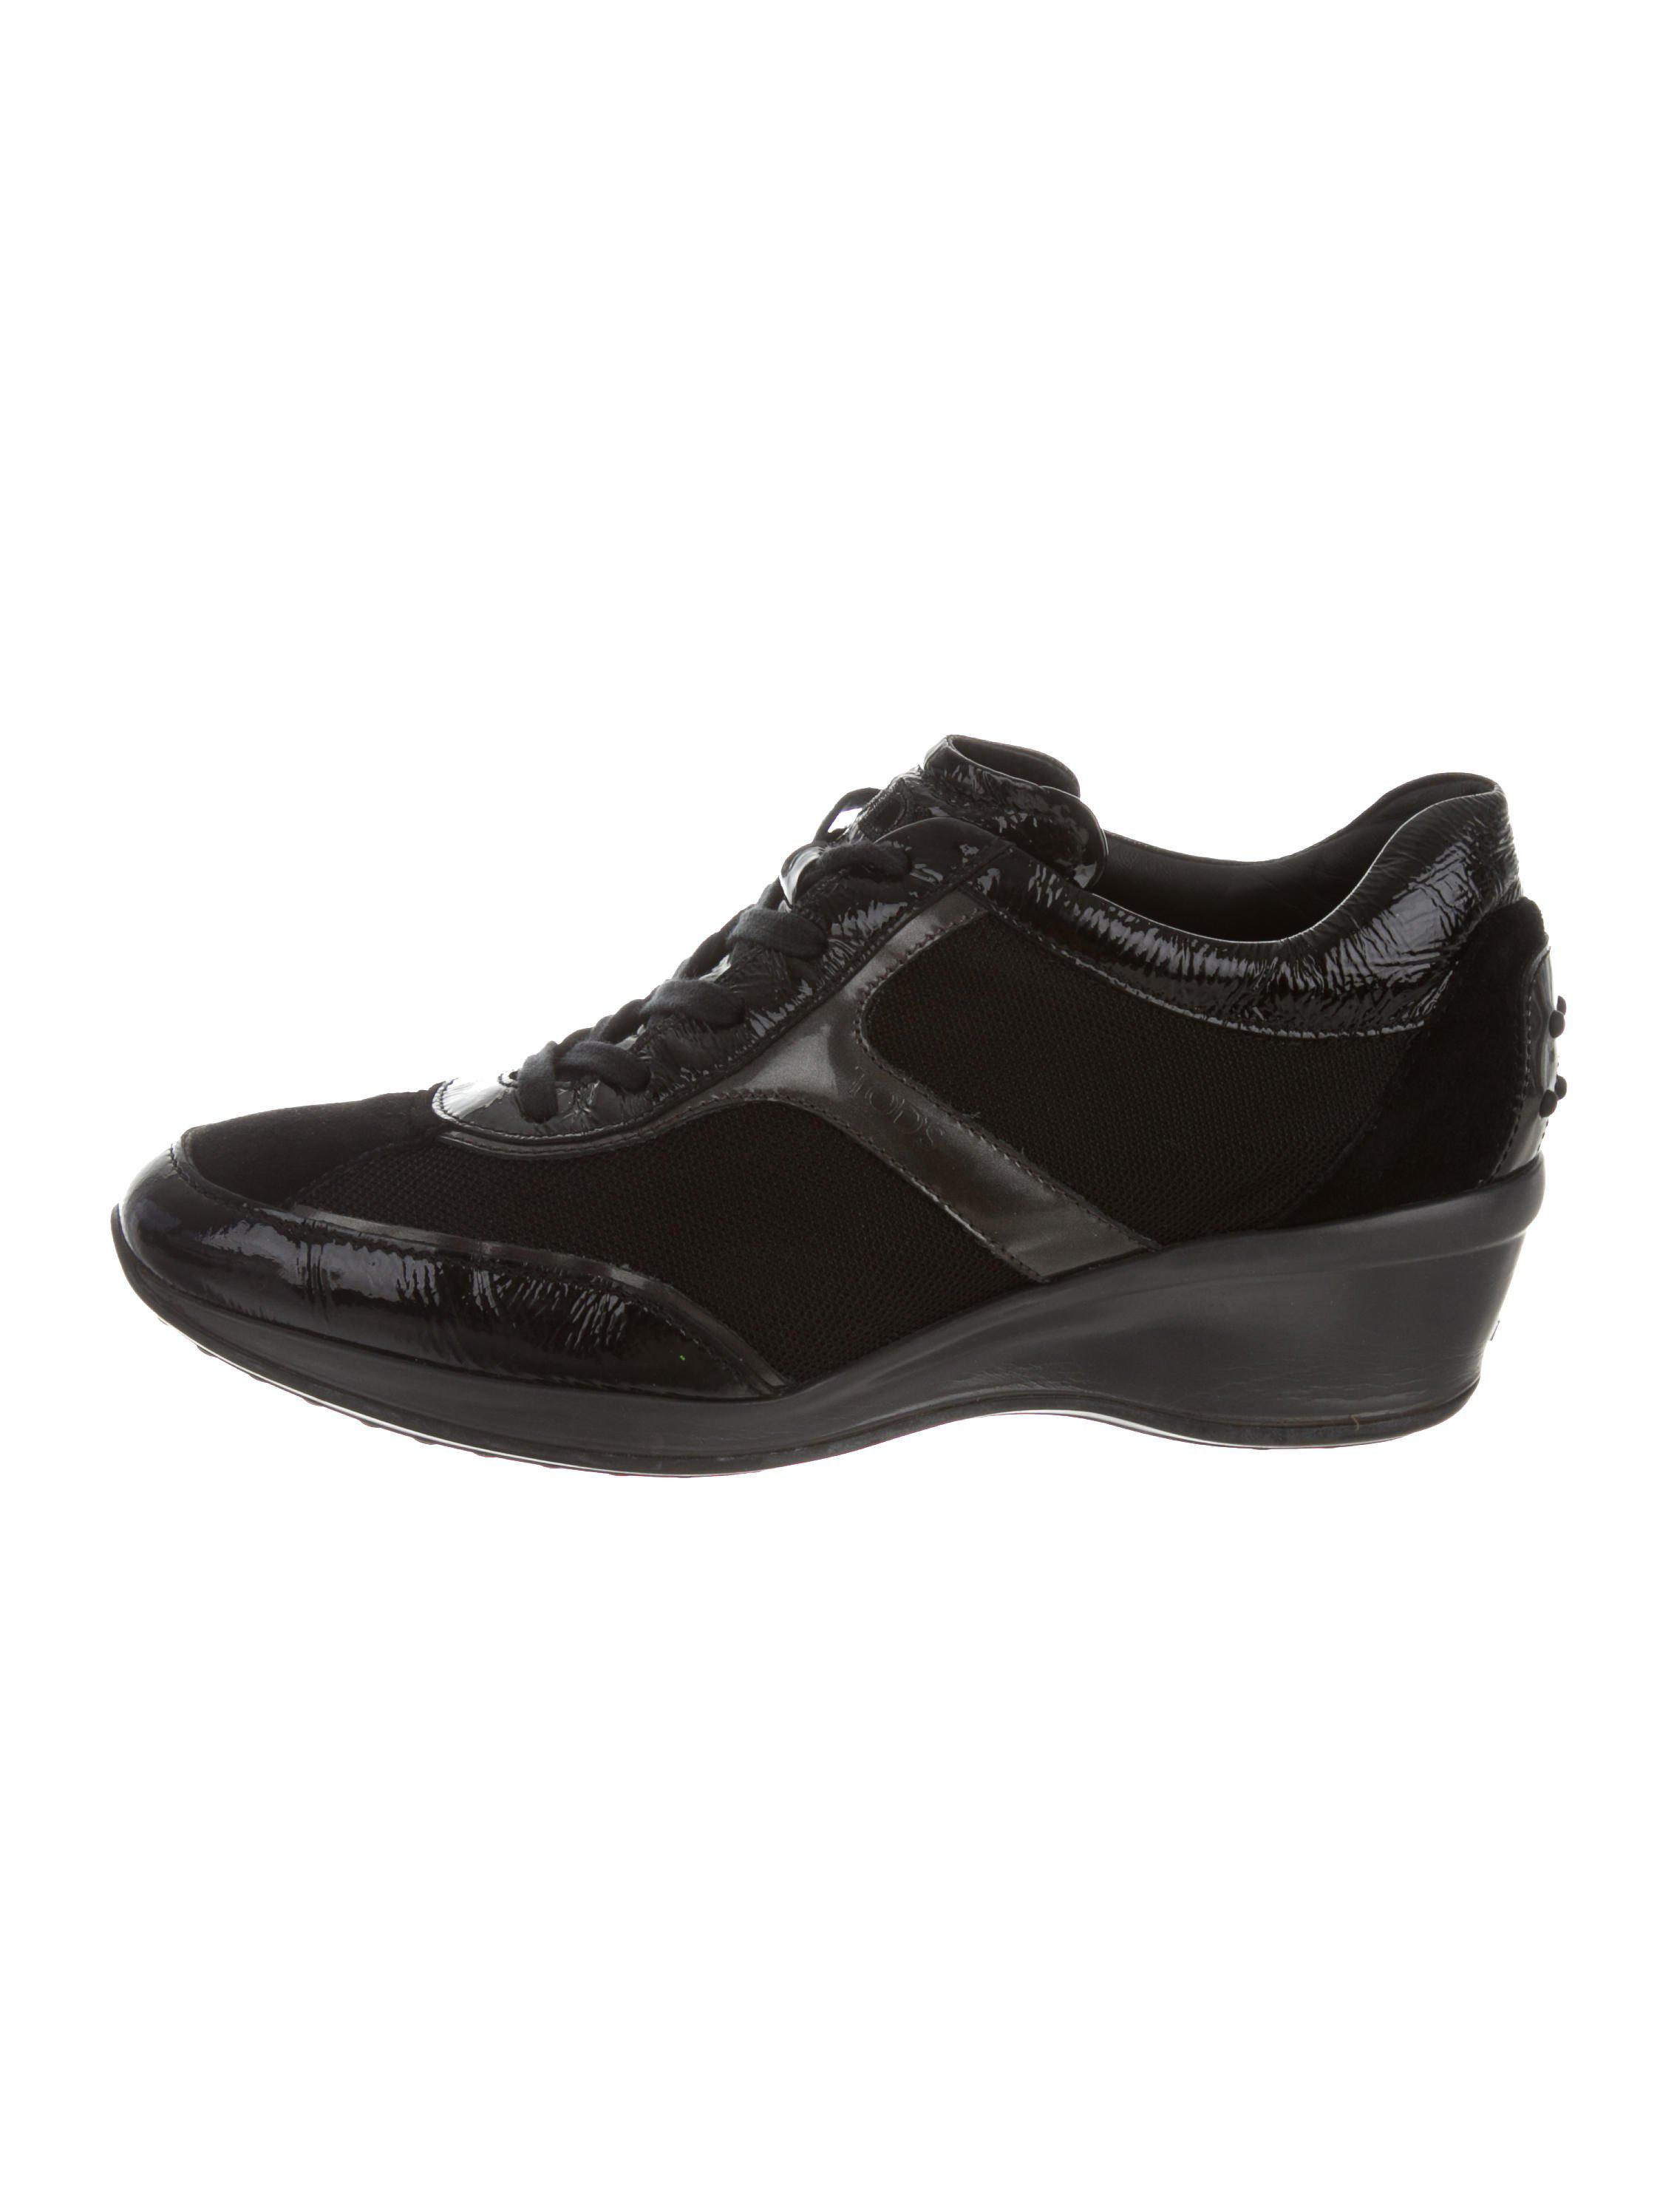 Top Lyst Round In Sneakers Tod's Toe Black Low wcqxIRazp